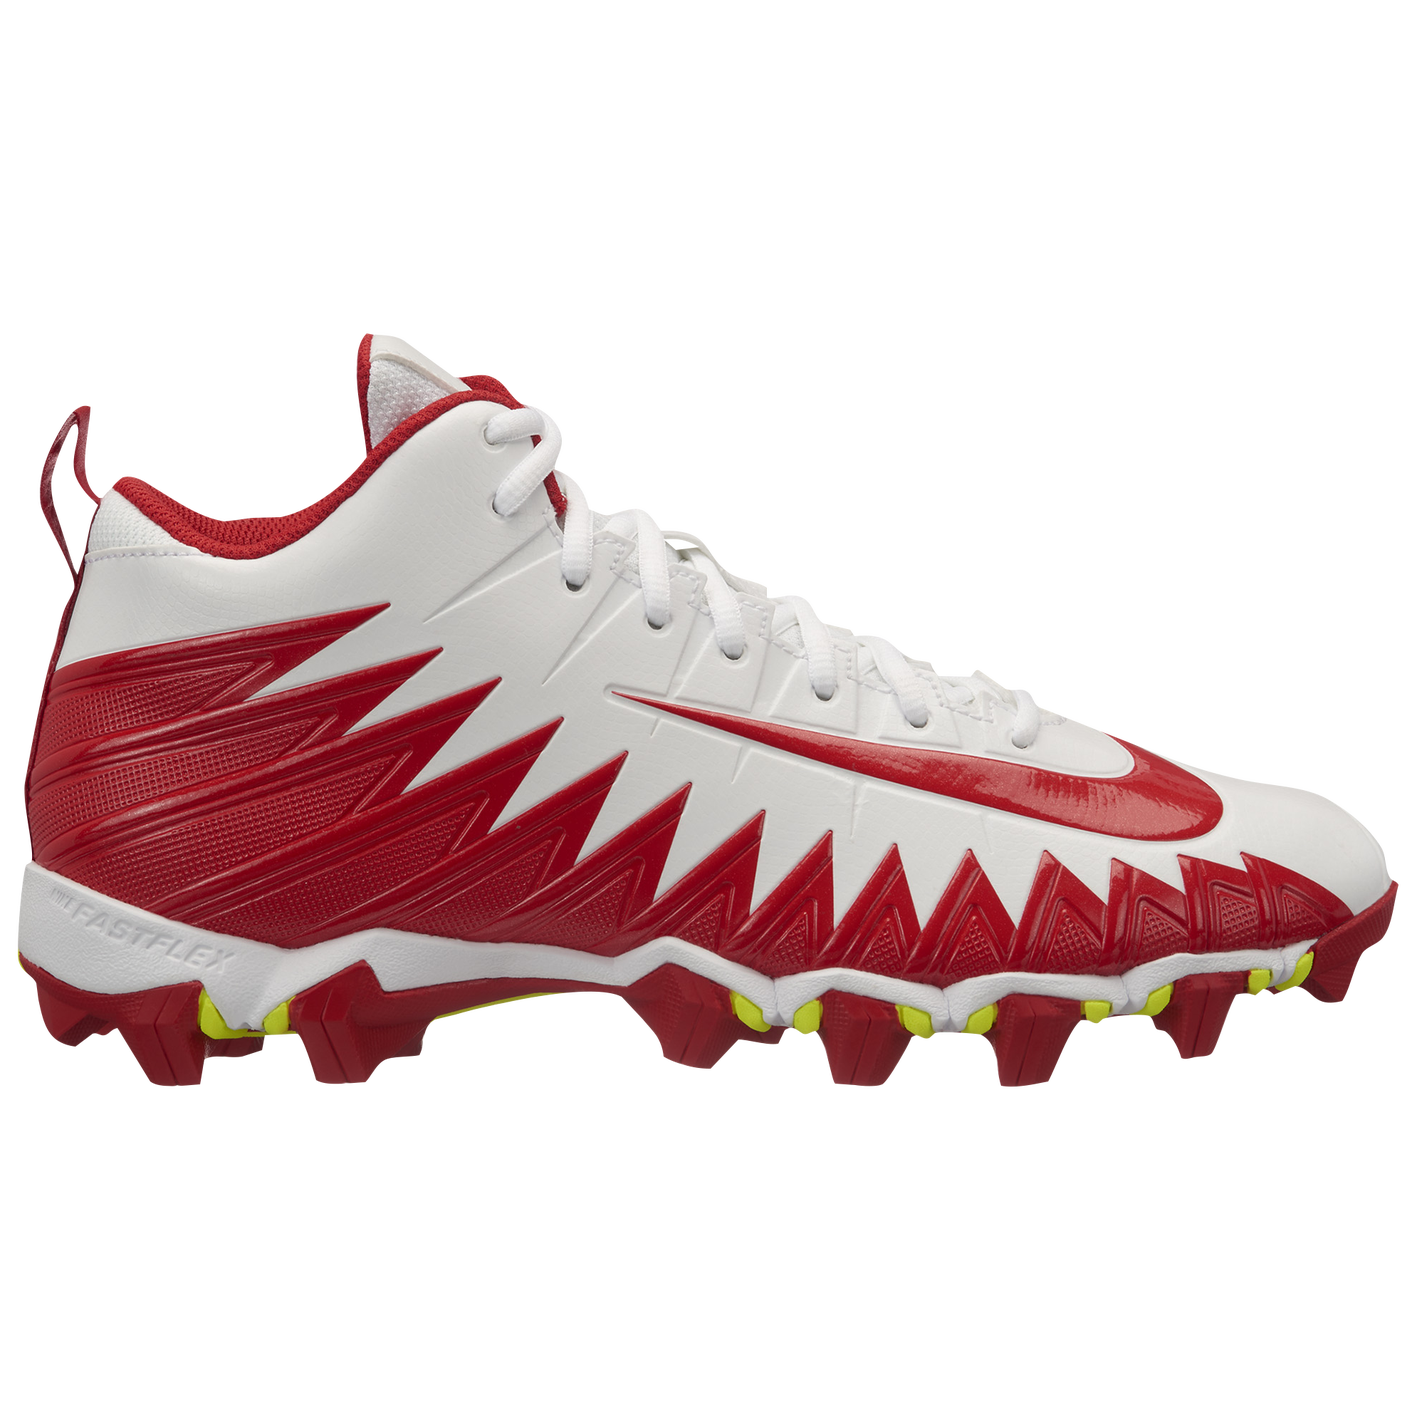 f81e8d276c4 Nike Alpha Menace Shark - Men s - Football - Shoes - White ...